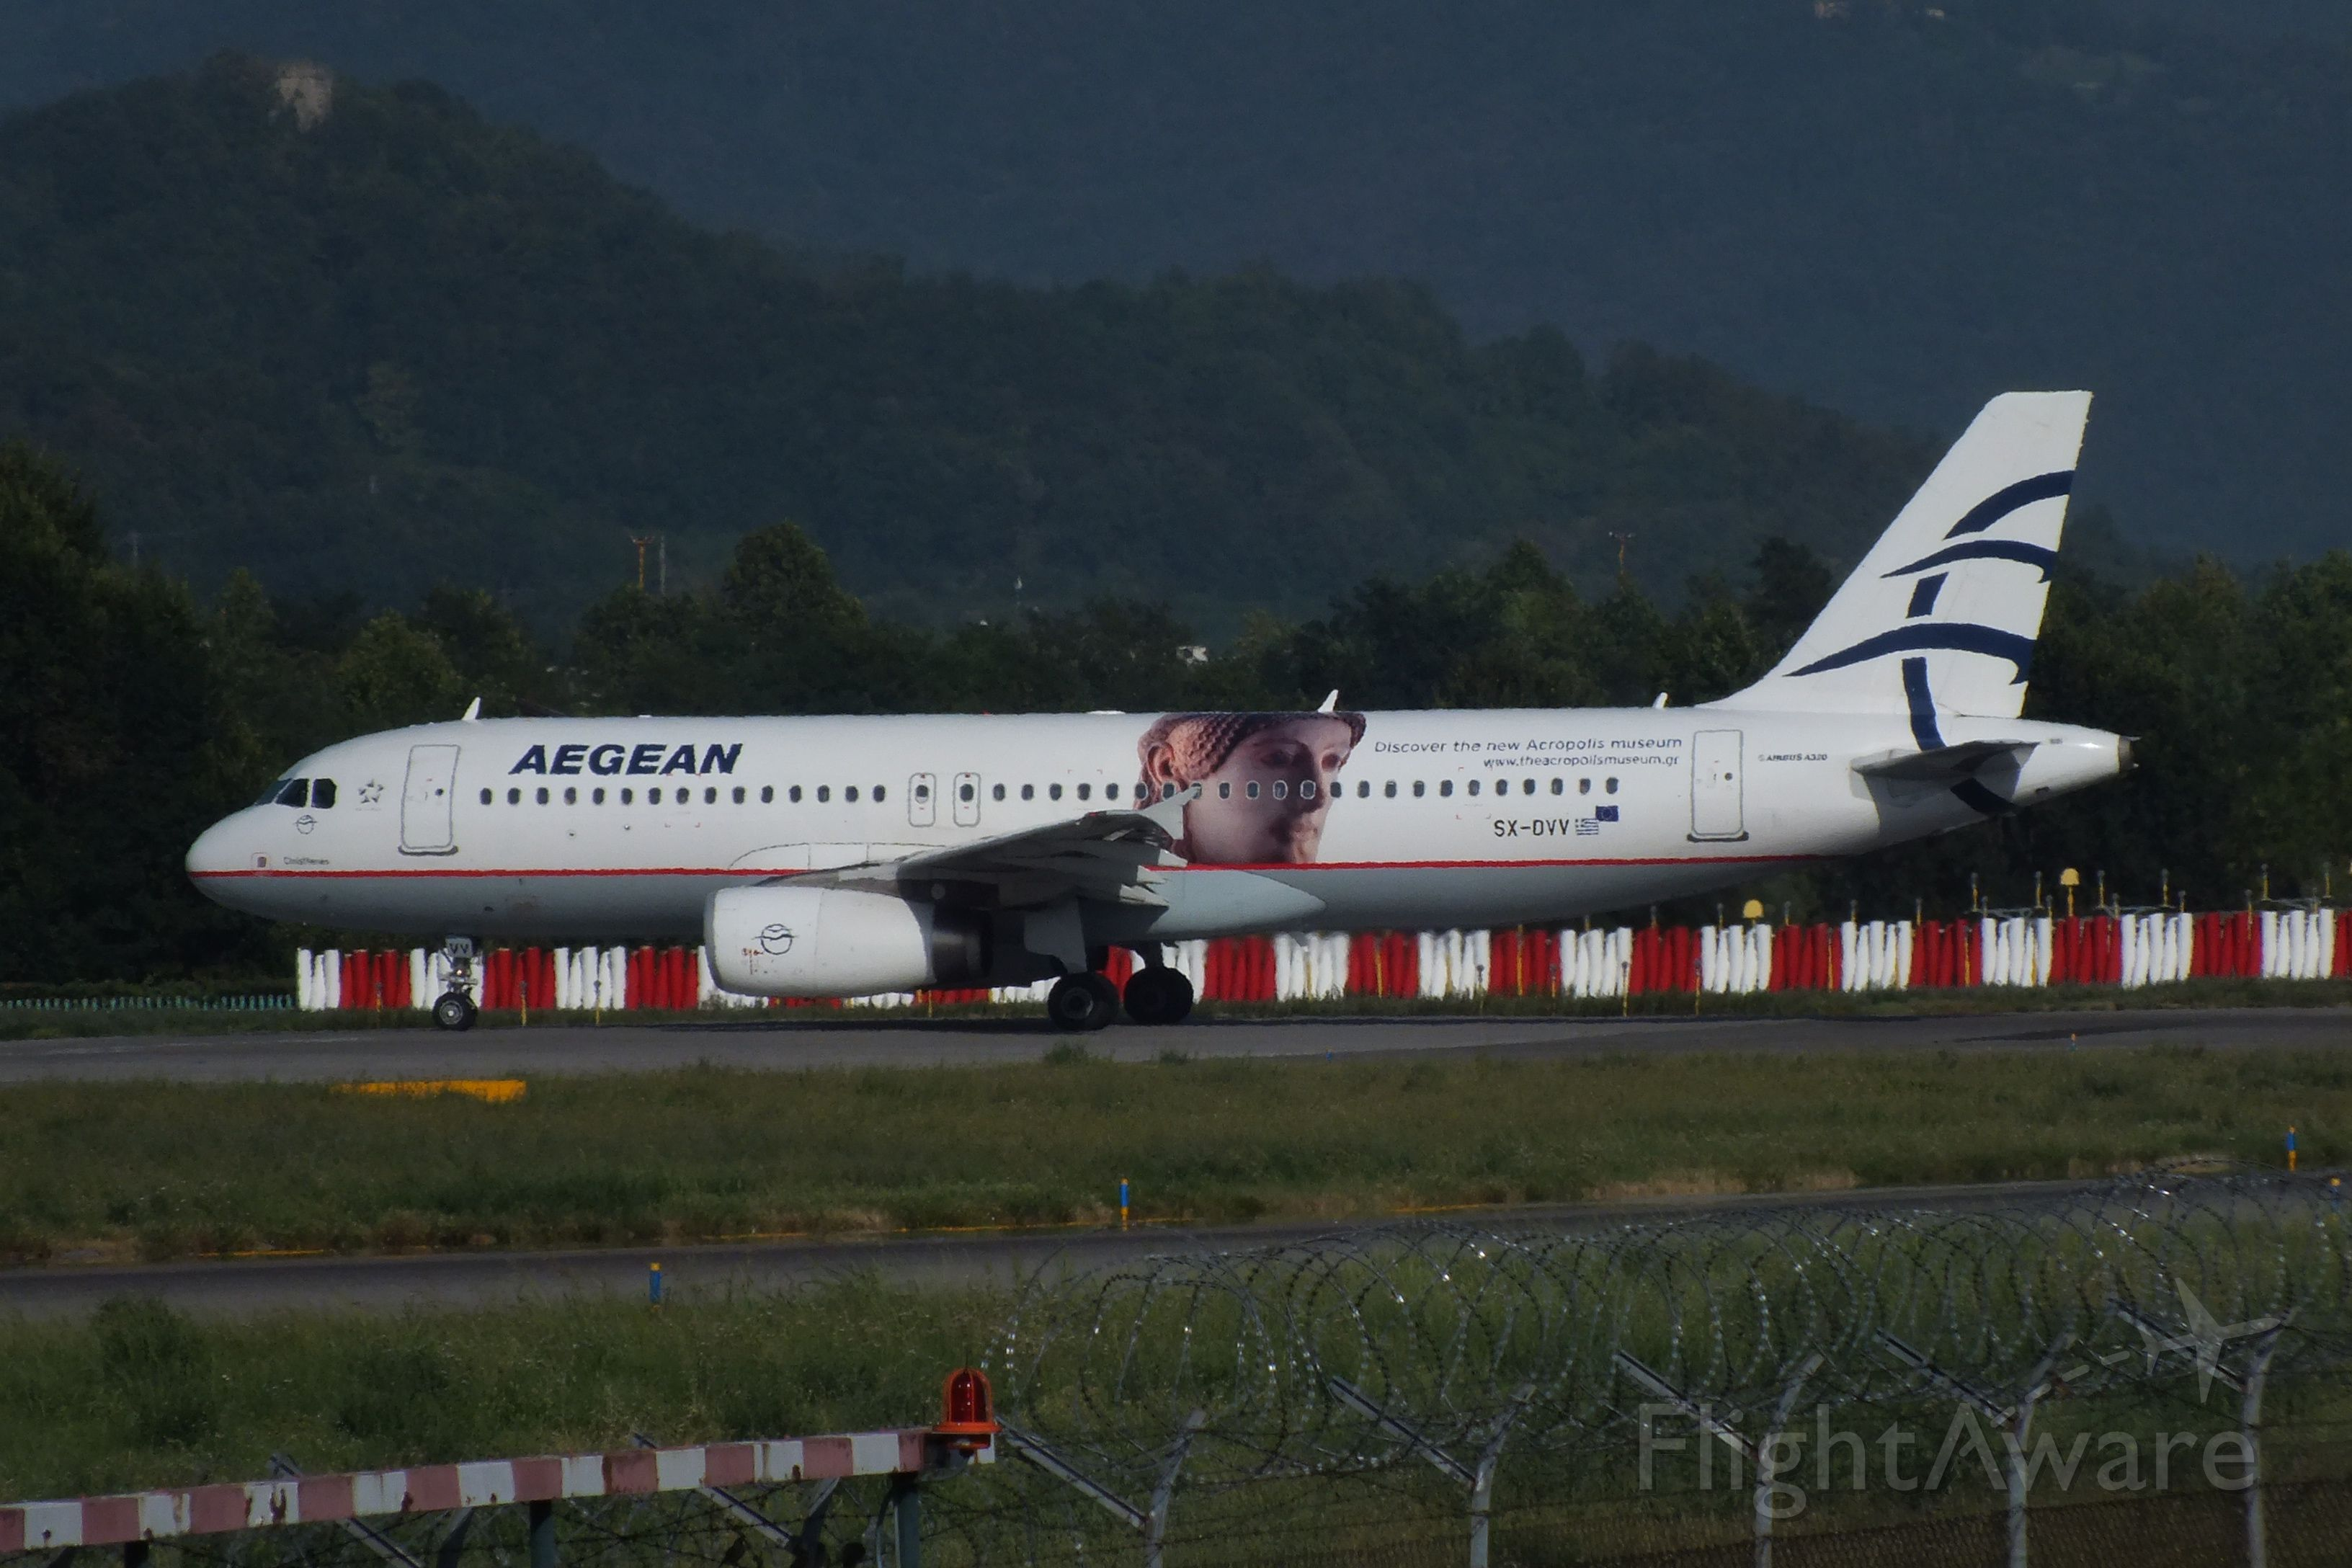 Airbus A320 (SX-DVV) - LINE UP AND WAIT RWY28 AT BERGAMO(ITALY)